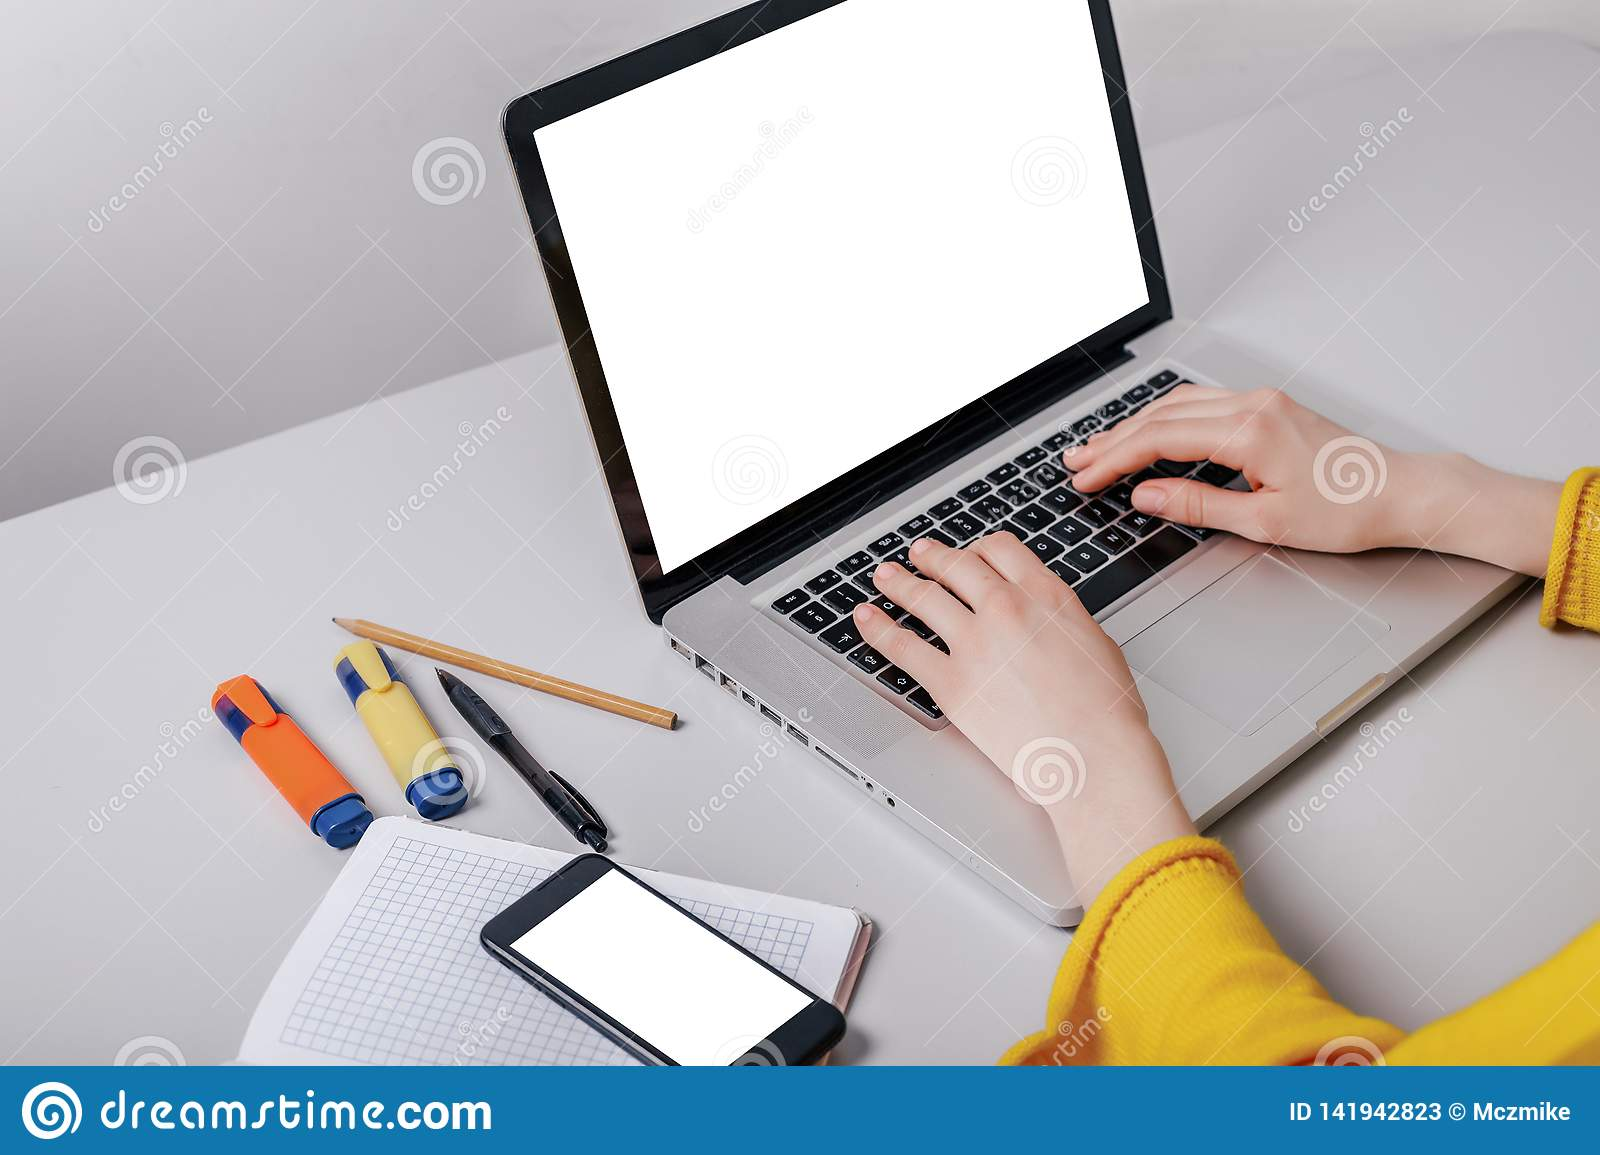 Mockup image cell phone,computer hand typing with blank screen for text, girl using laptop and searching information